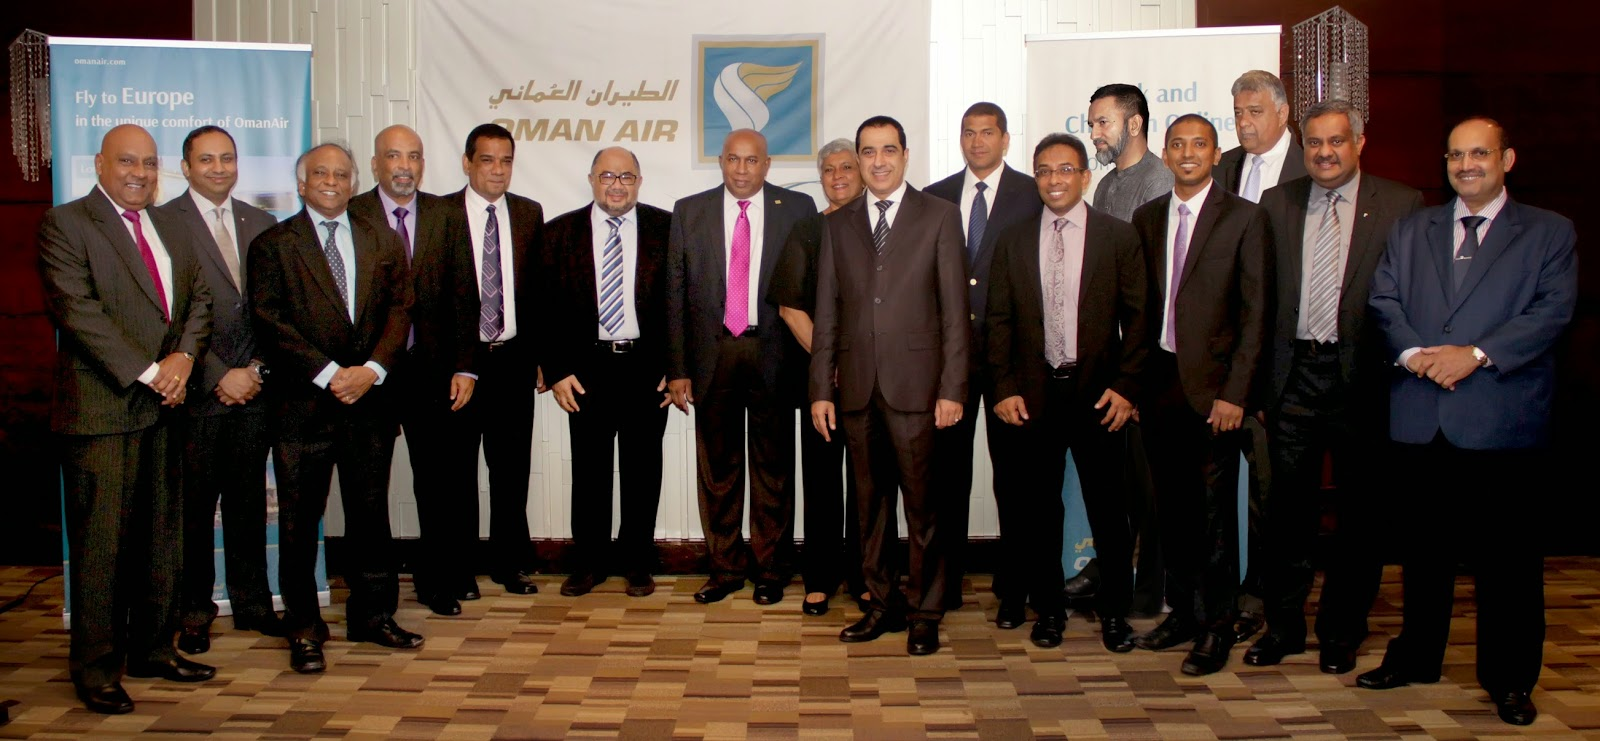 Abdulrahaman Al-Busaidy - Chief Operating Officer, Abdulrazaq bin Juma Alraisi - Chief Commercial Officer, Senior Managers from HDQ, Gihan Karunaratne - Country Manager - Sri Lanka & Maldives with the top performing Sri Lankan agents and the management team of the General Sales Agents.